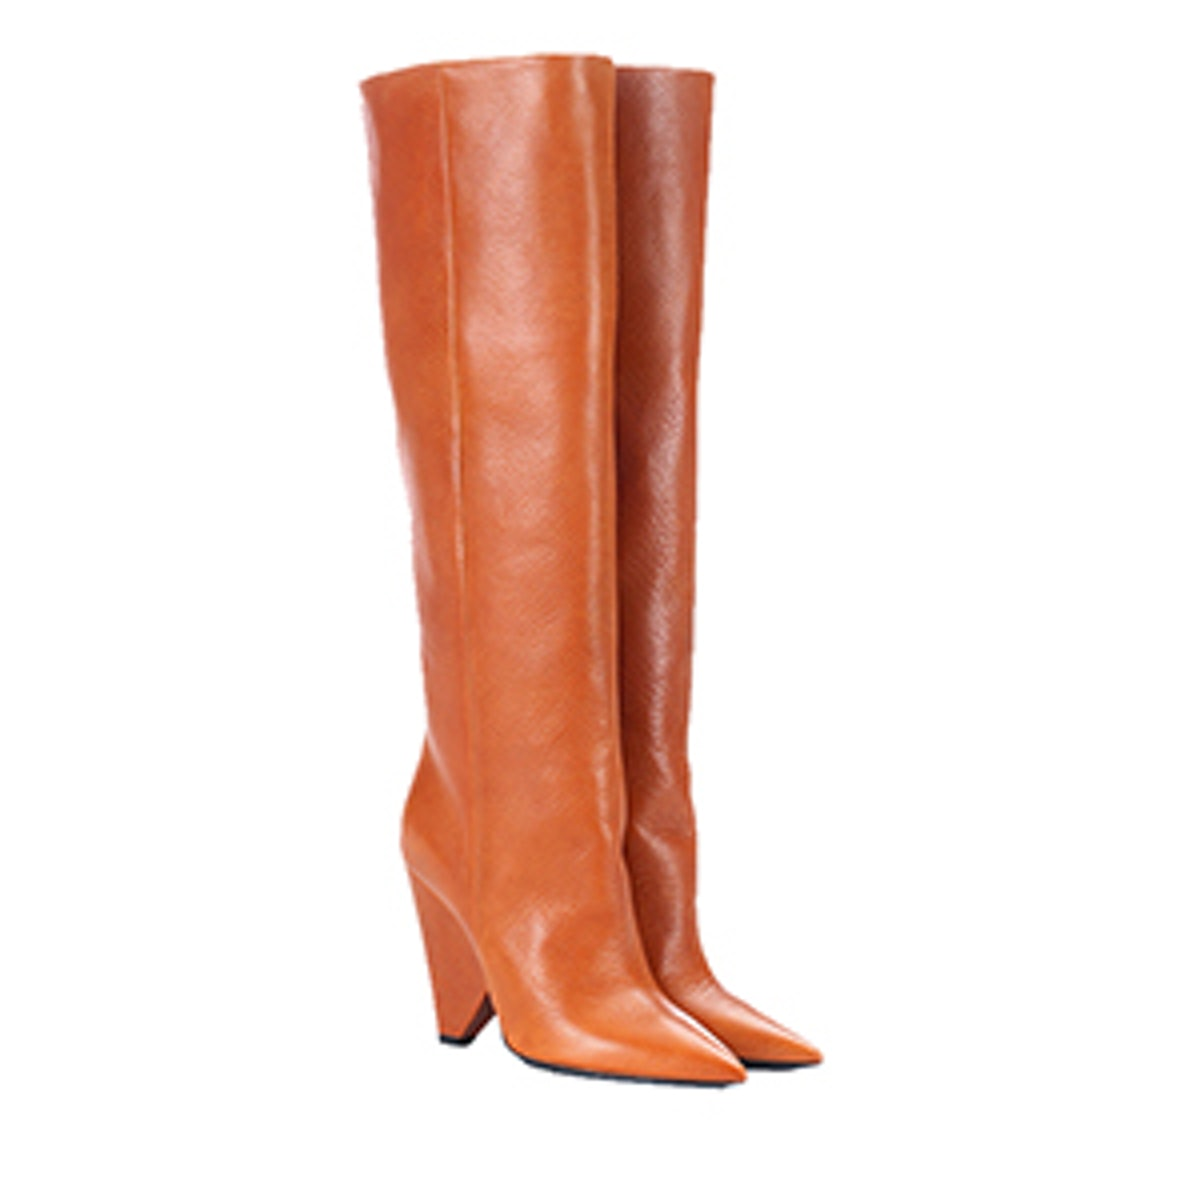 Niki Leather Knee-High Boots